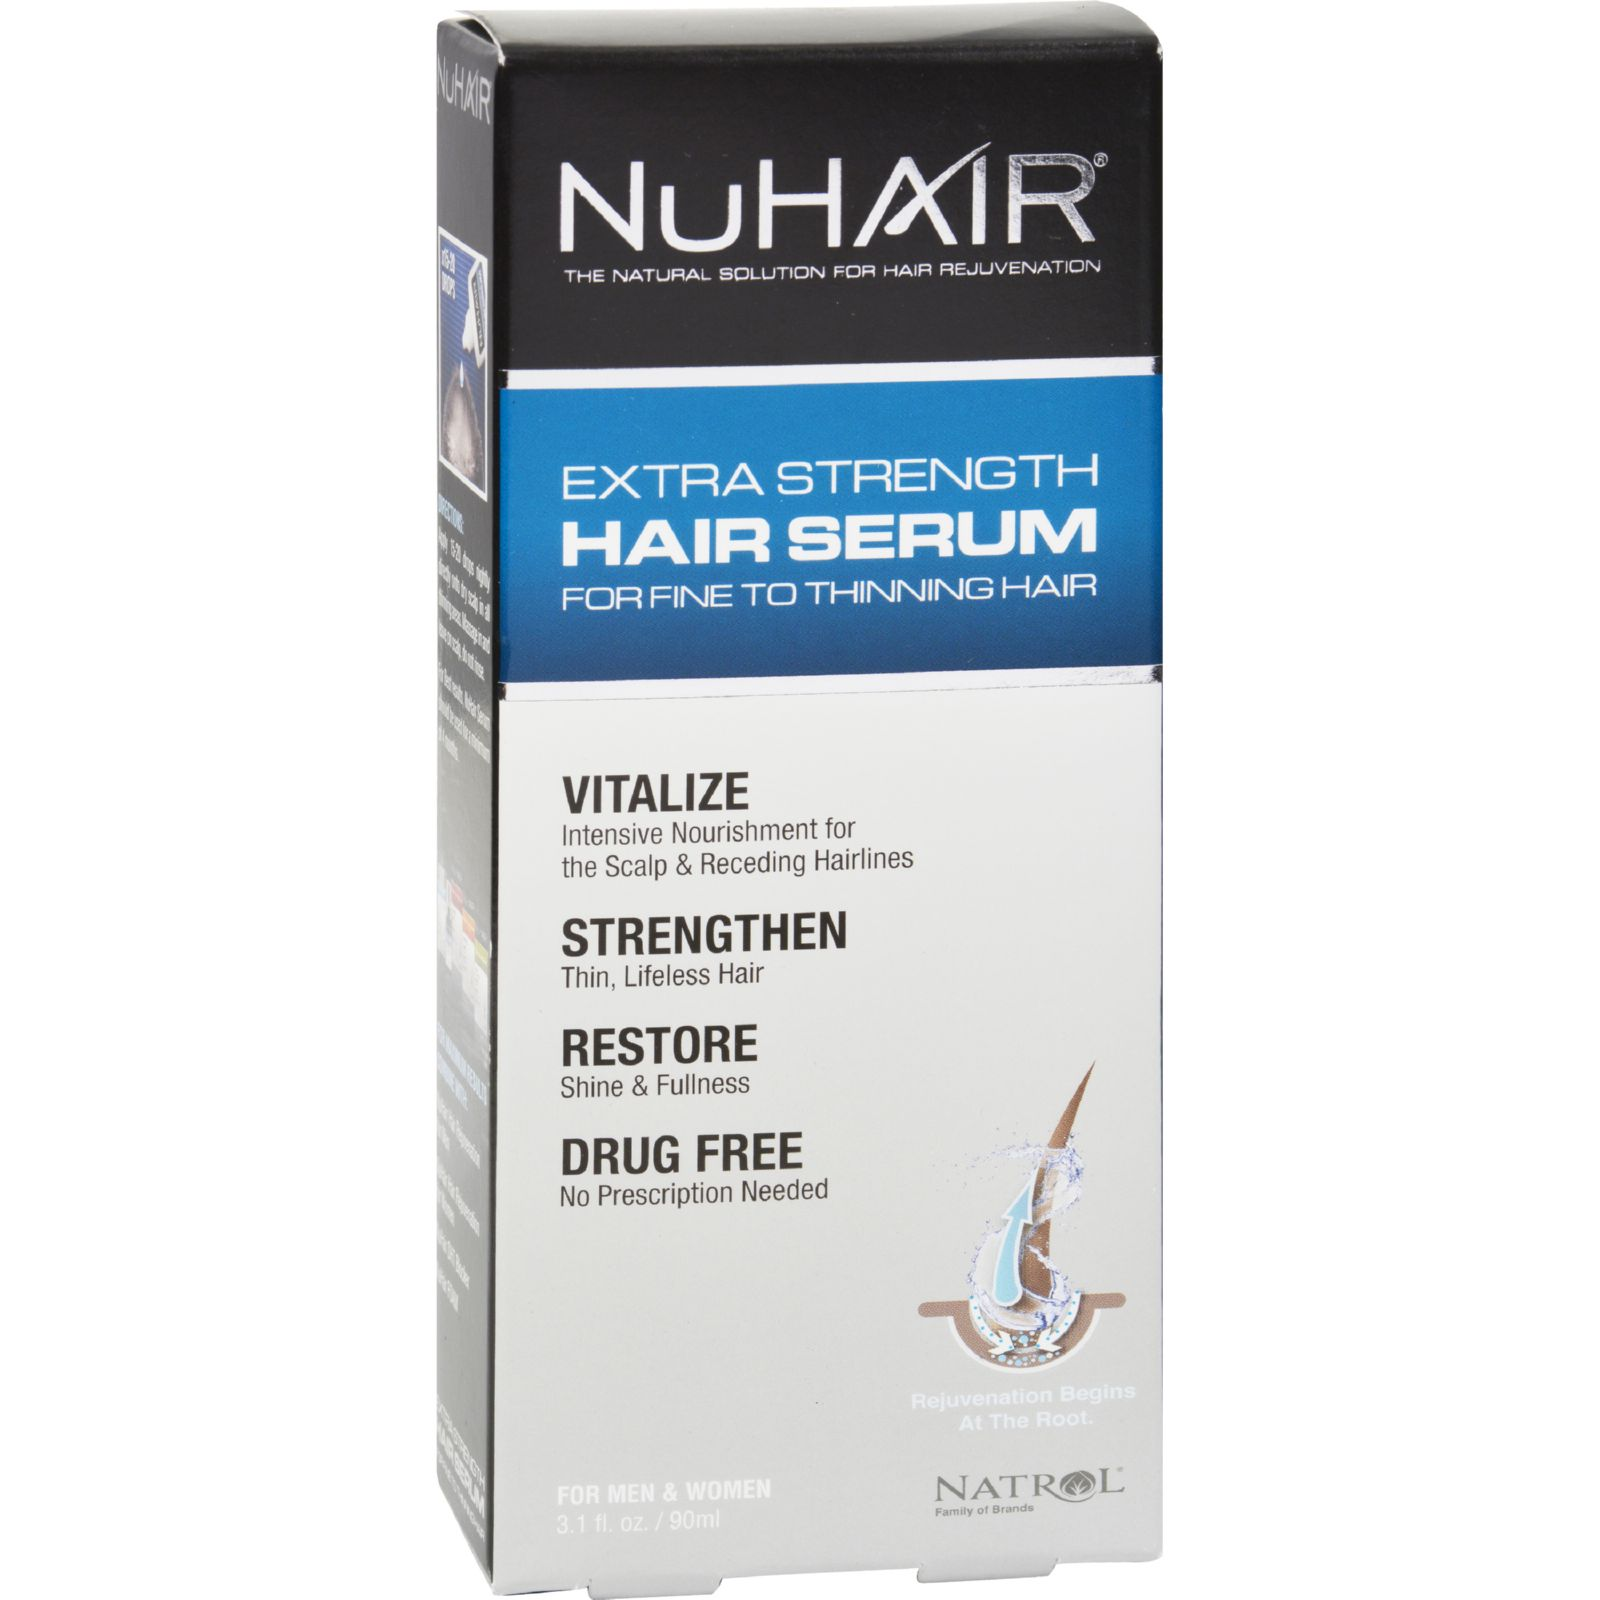 NuHair Extra Strength Thinning Hair Serum For Men and Wom...